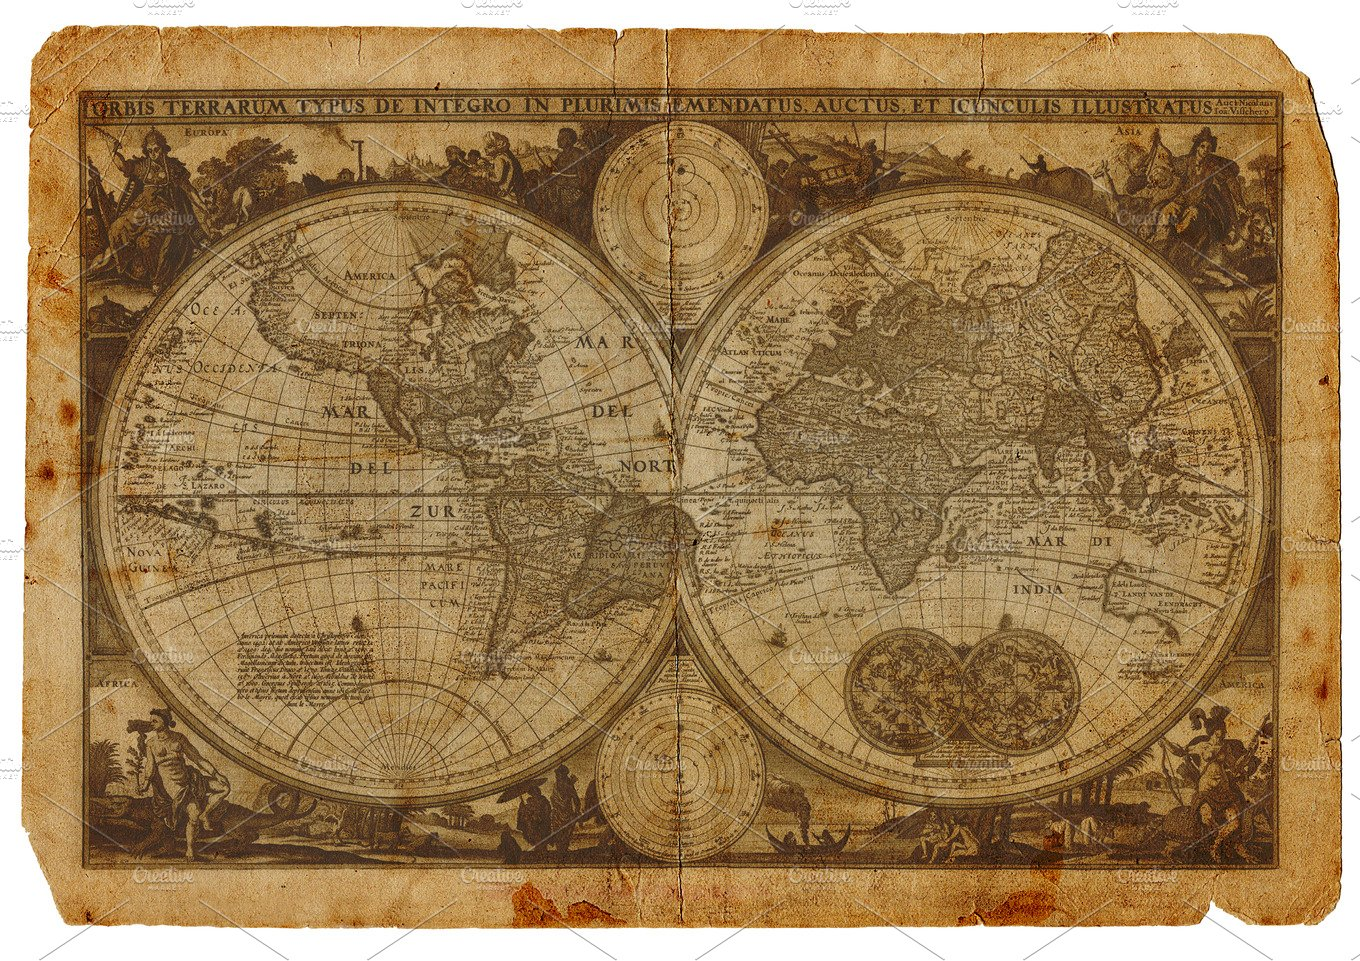 Vintage world map transportation photos creative market gumiabroncs Gallery